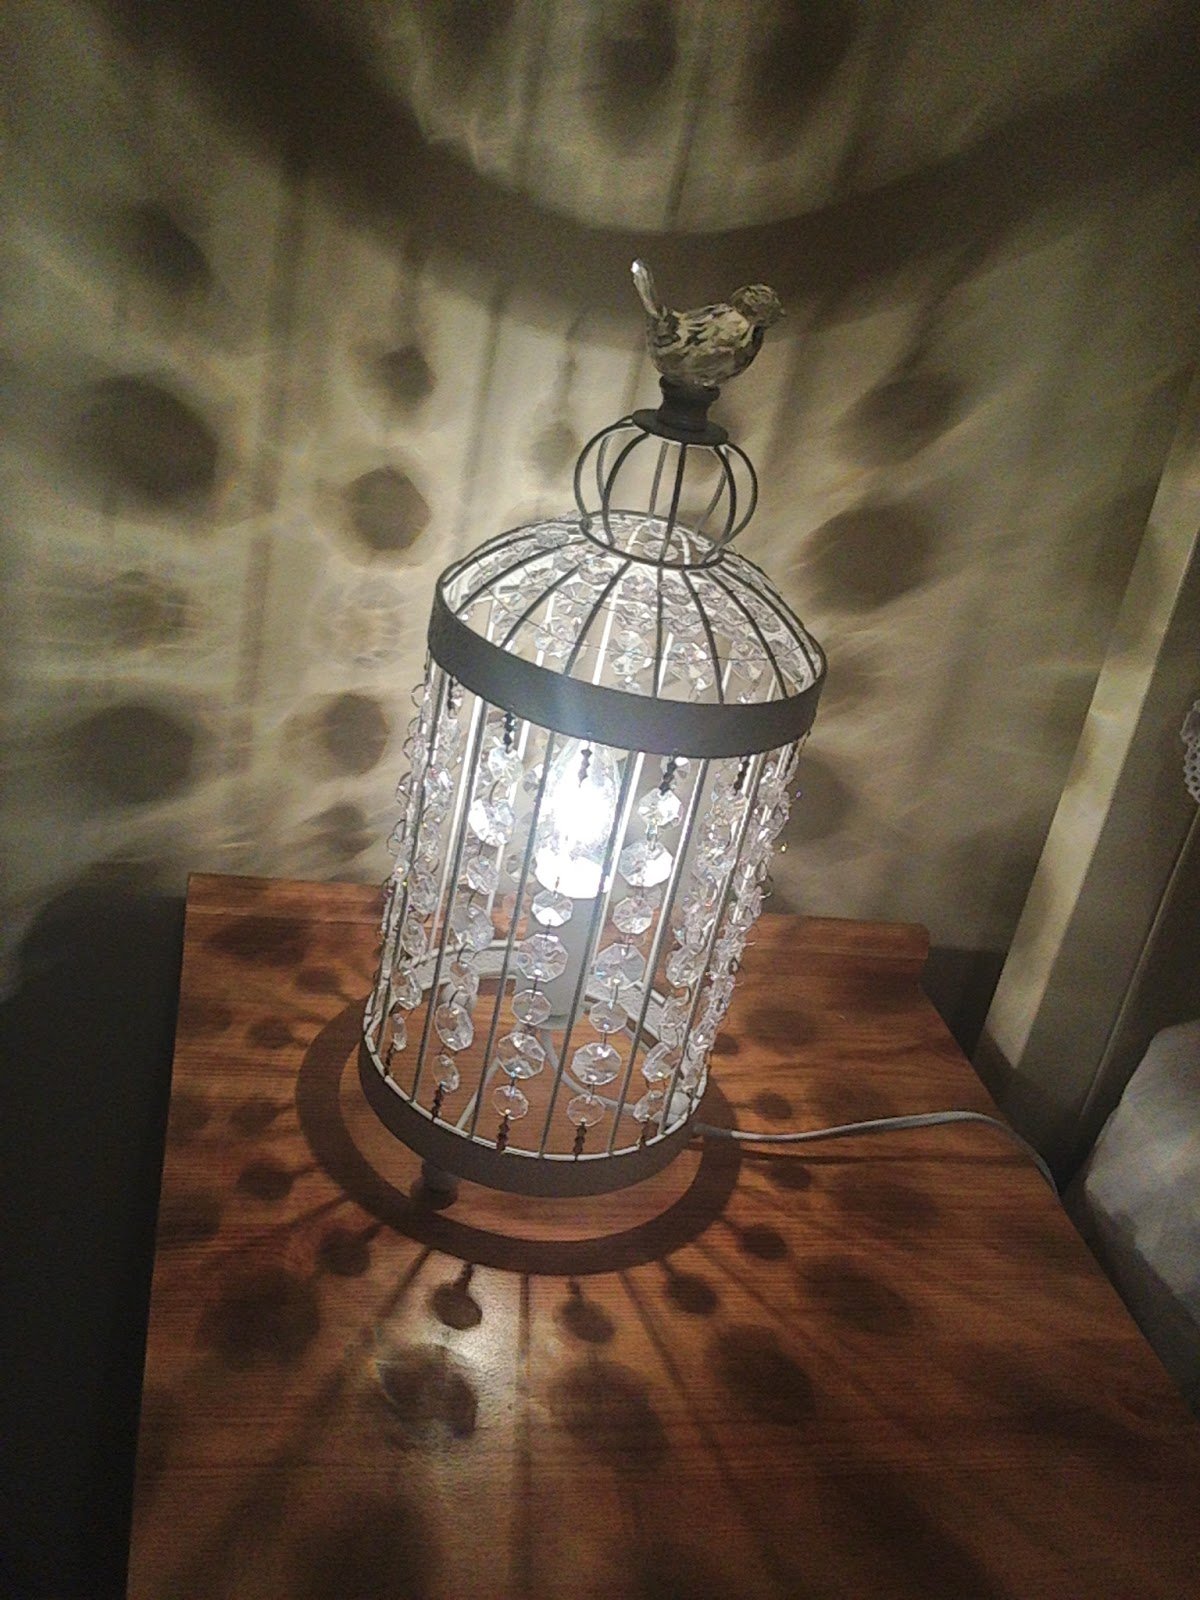 bamboo shops bird with lamp lights pendant room light bar creative birdcage cafe lamps hanging dining articles tag study restaurant cage pastoral